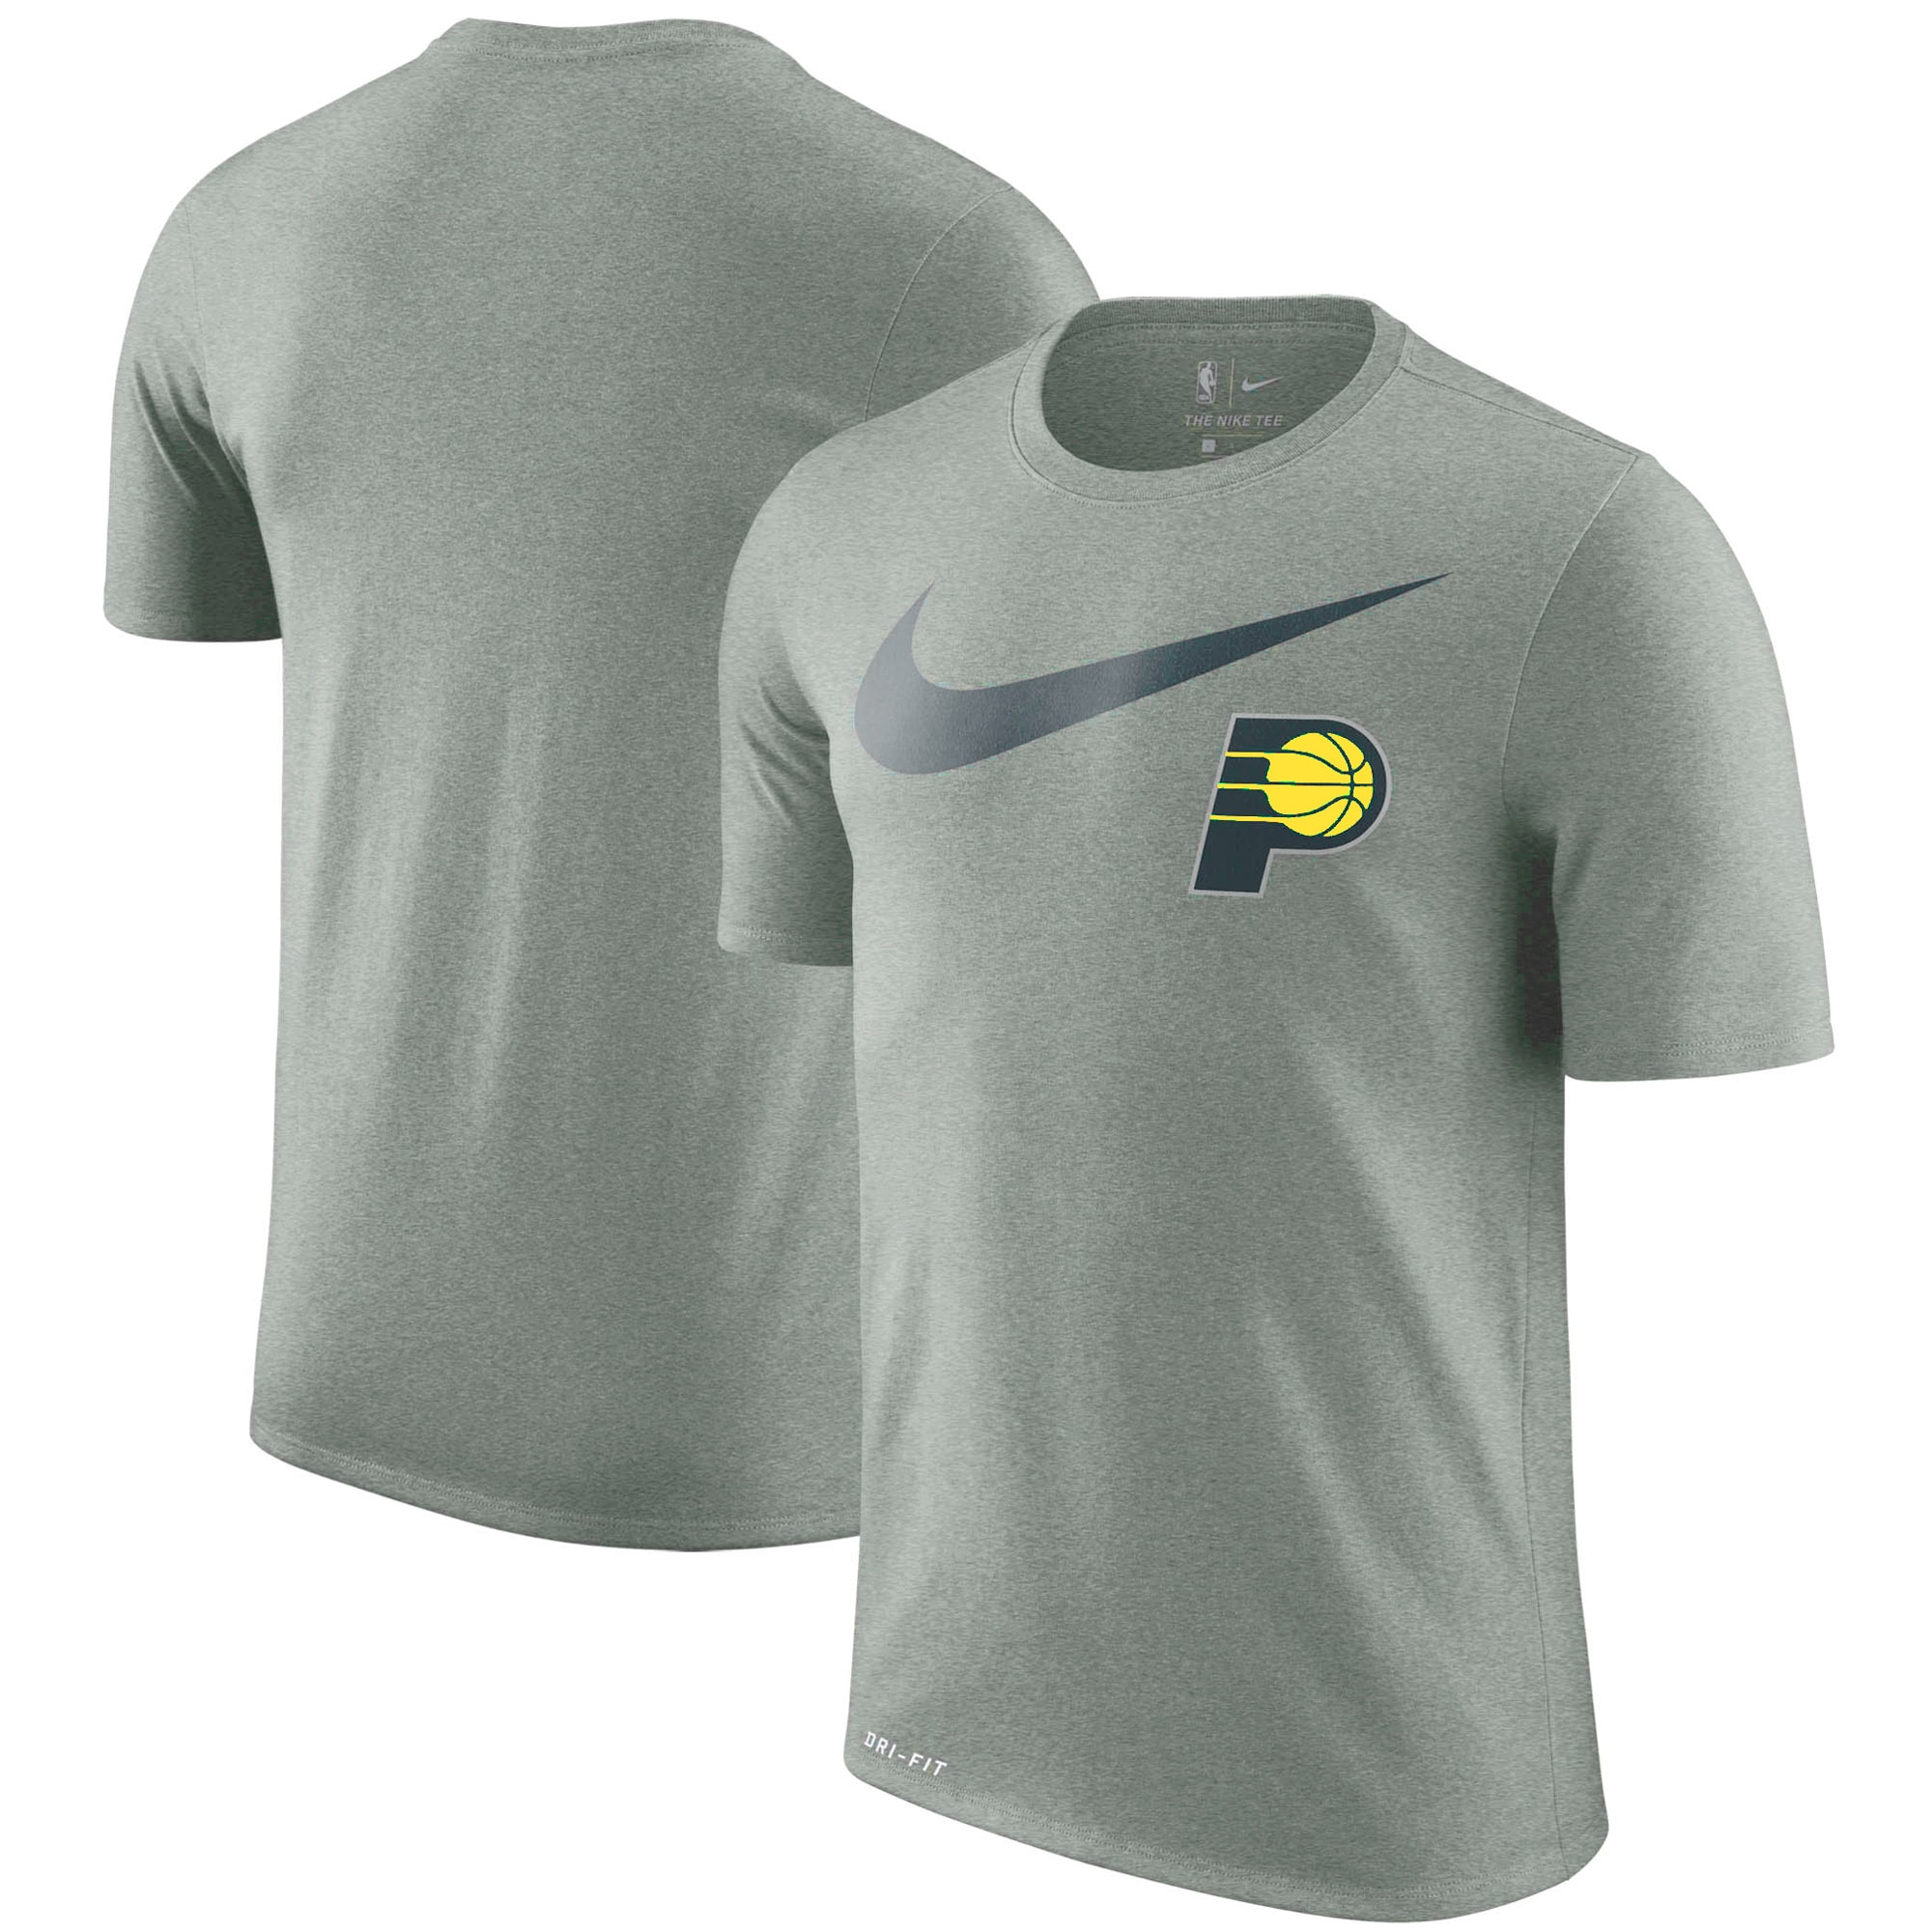 Indiana Pacers Nike Essential Swoosh Logo Legend T-Shirt - Heathered Charcoal